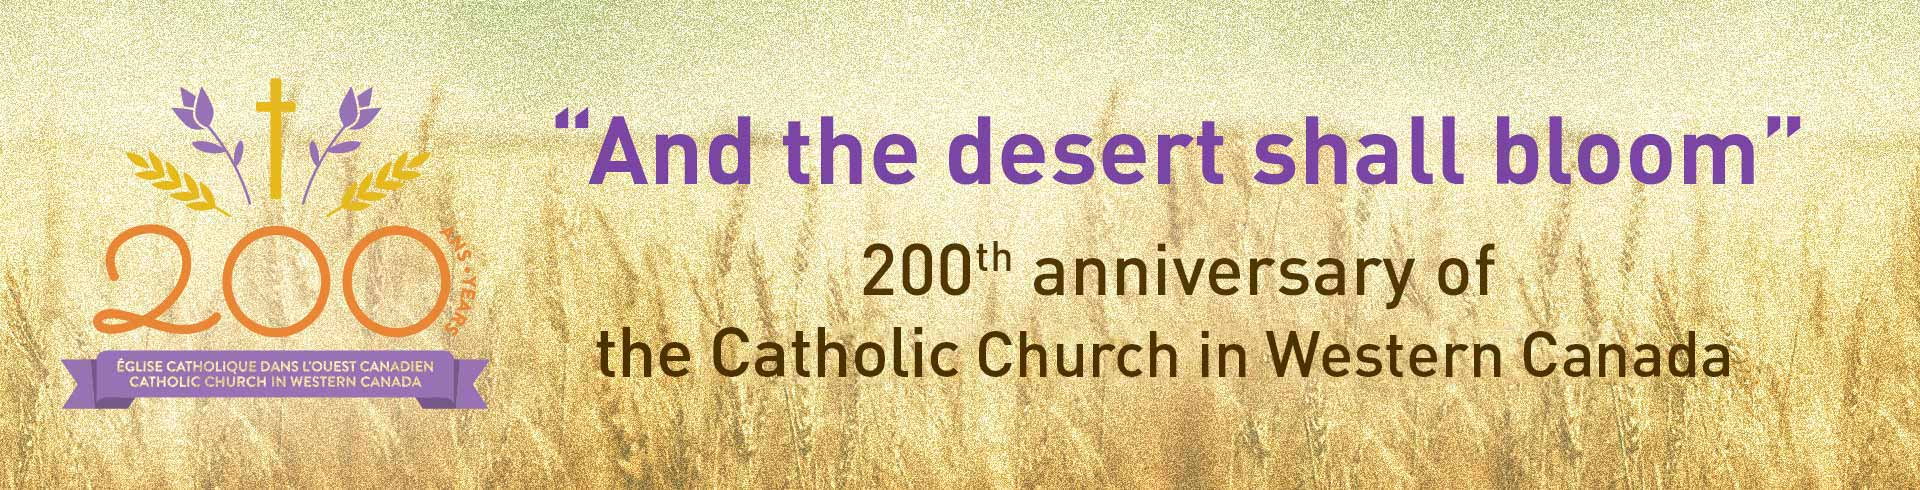 200th anniversary of the Diocese of Saint Boniface